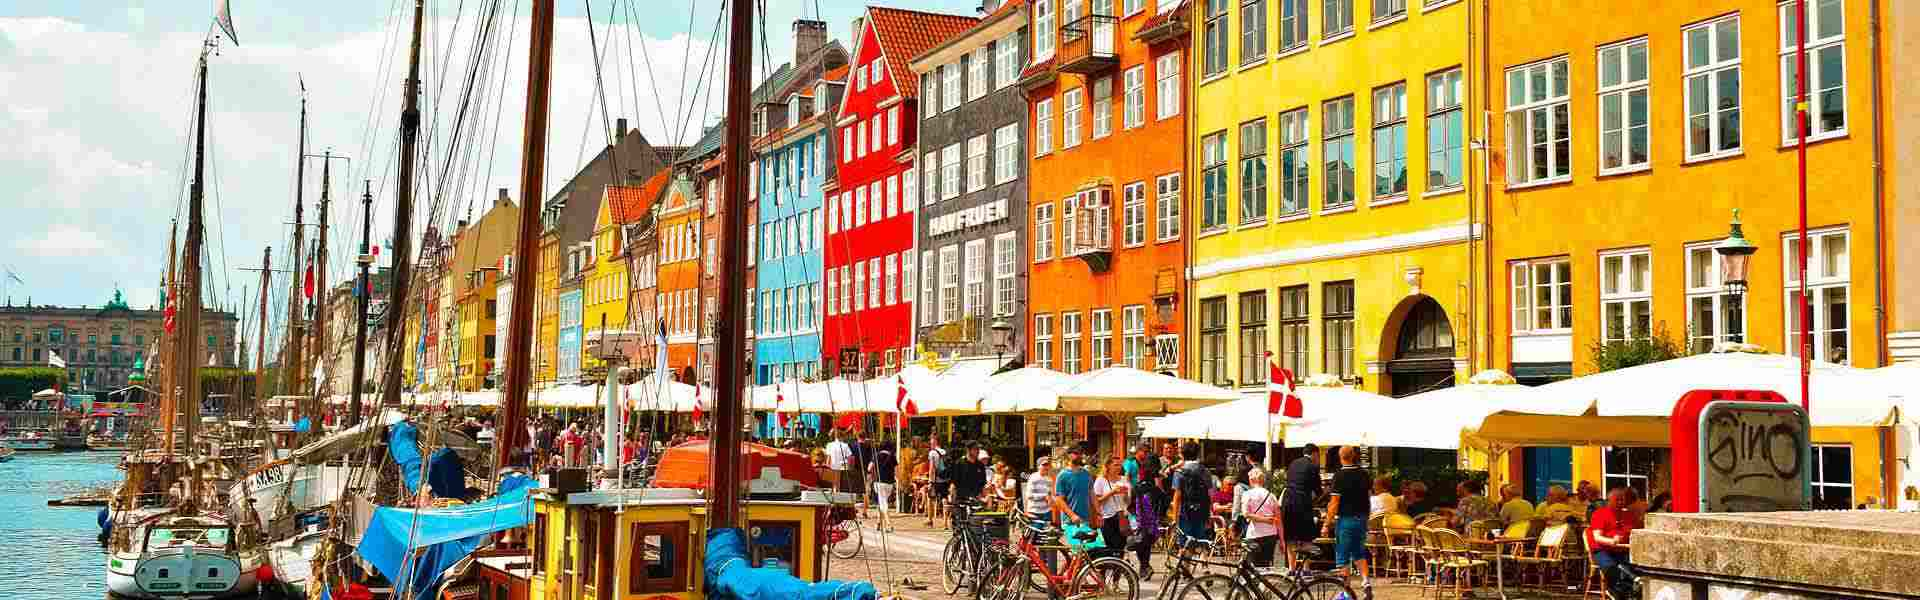 2019 Educatius High School Programs in Denmark for International Students